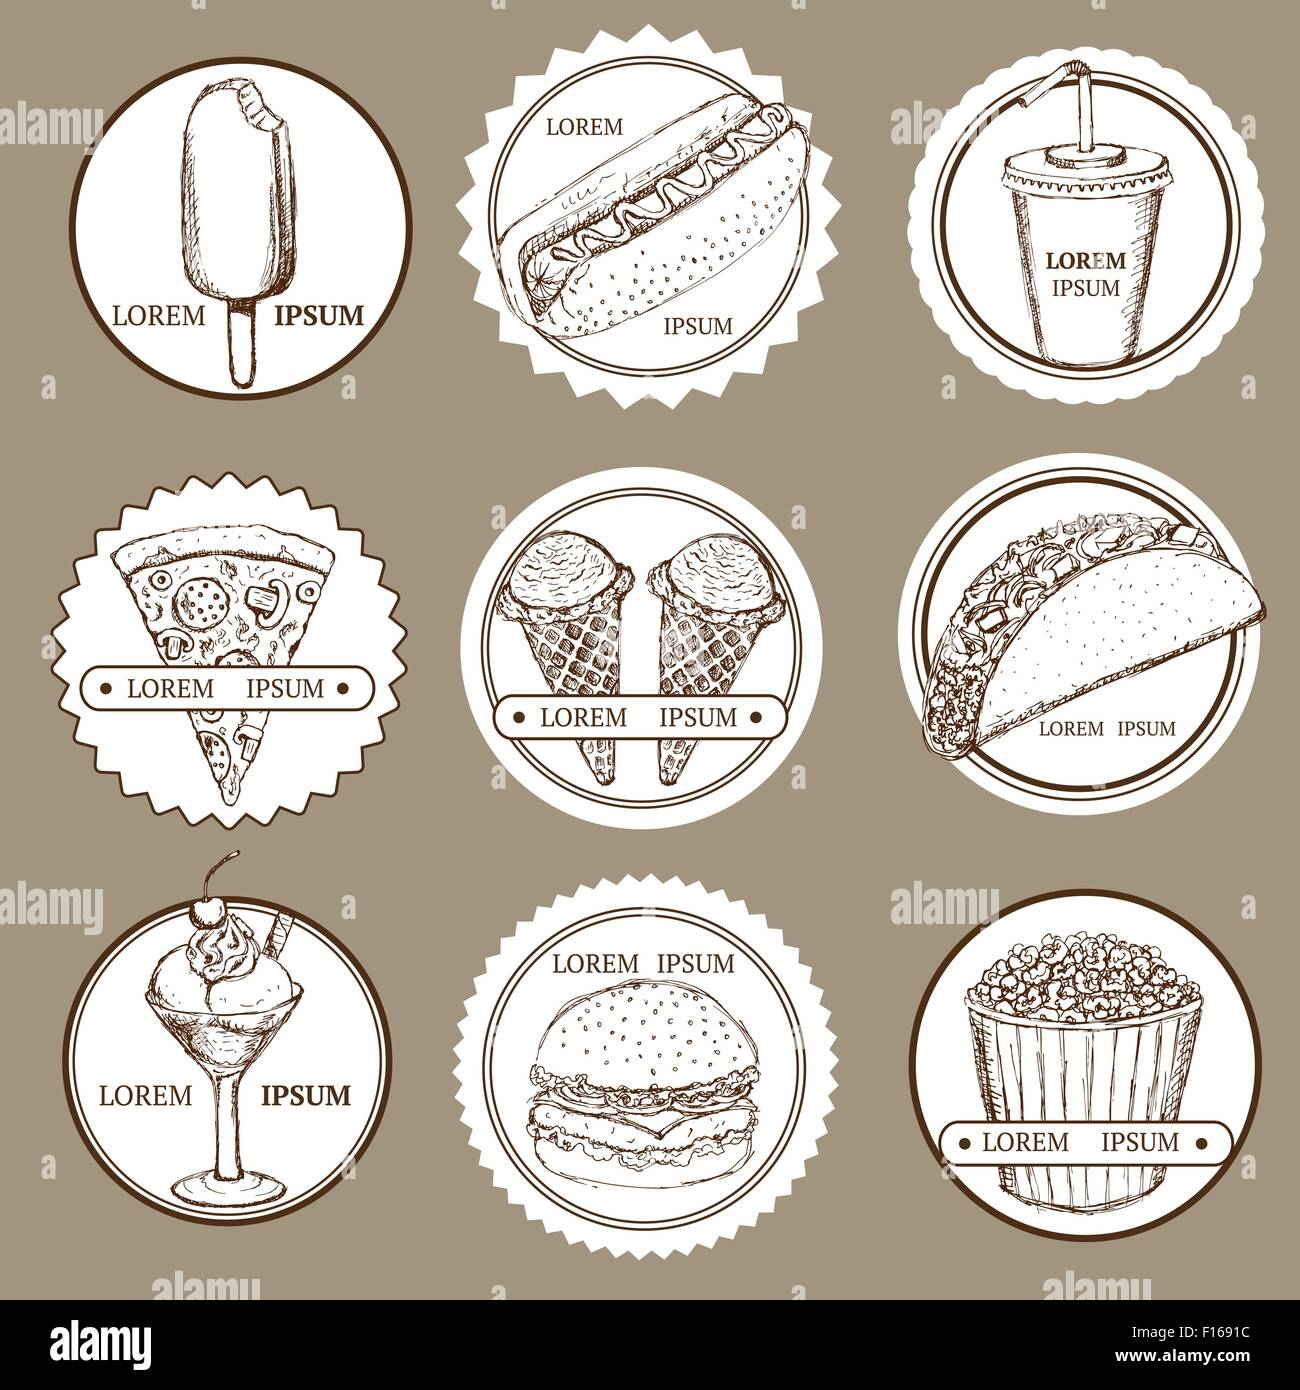 Sketch set of fast food and ice cream logotypes in vintage style, vector - Stock Image